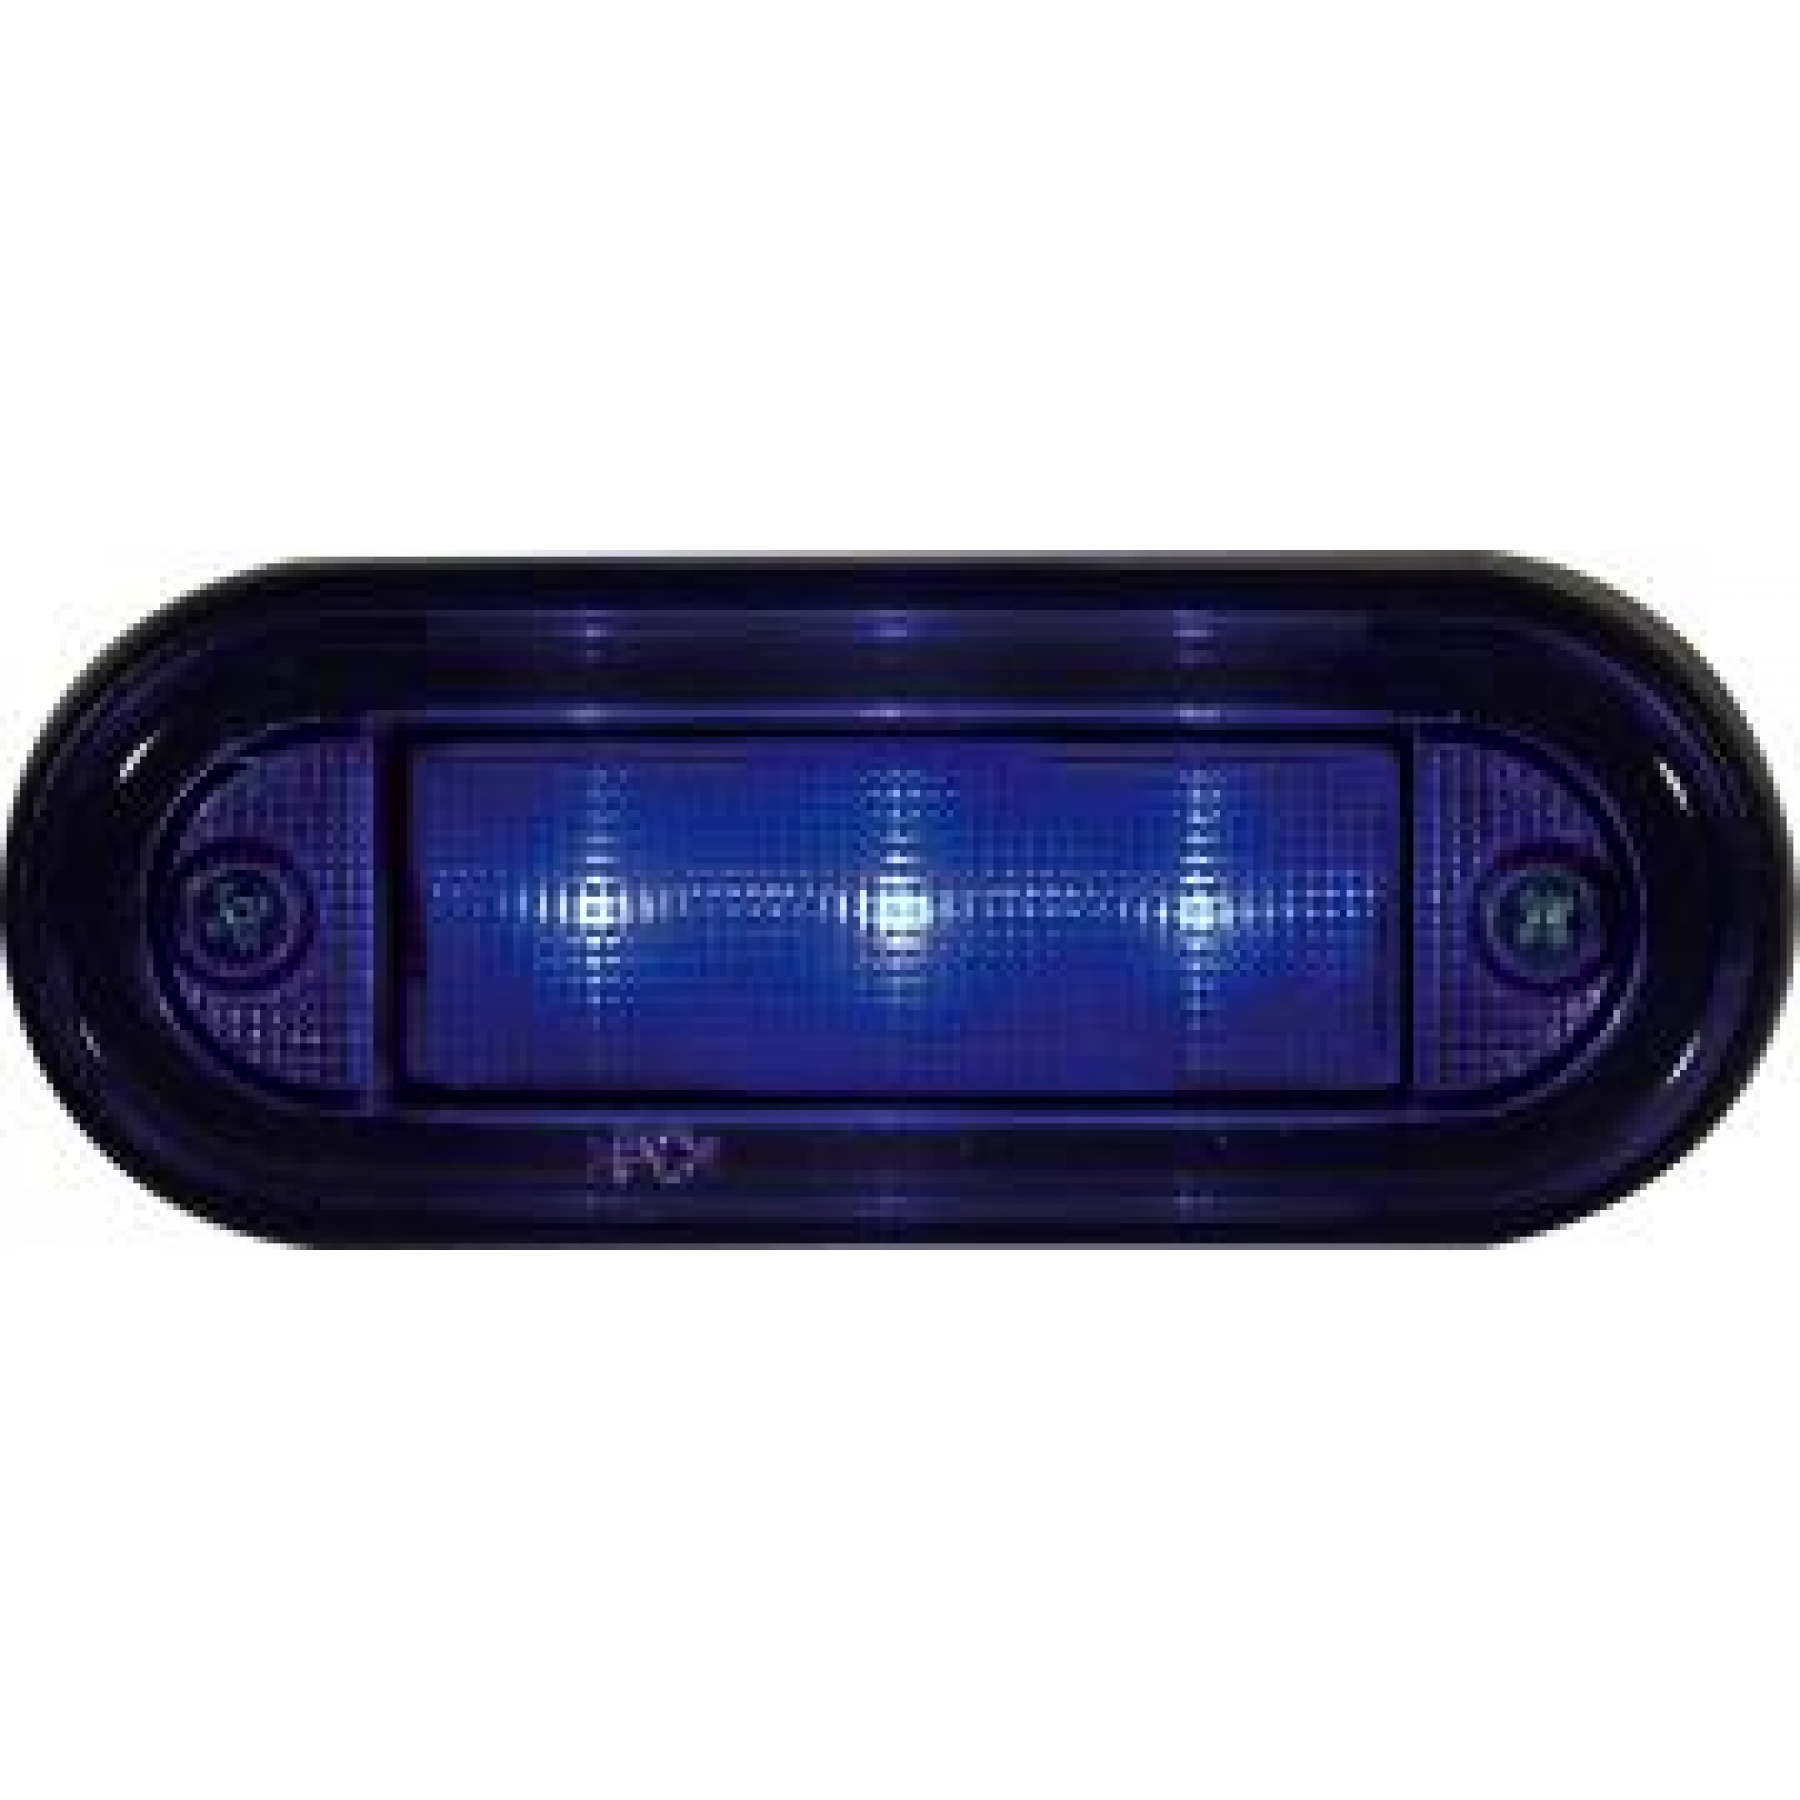 Markeringslamp LED 12/24v 89x34 blauw (wit glas) 3led